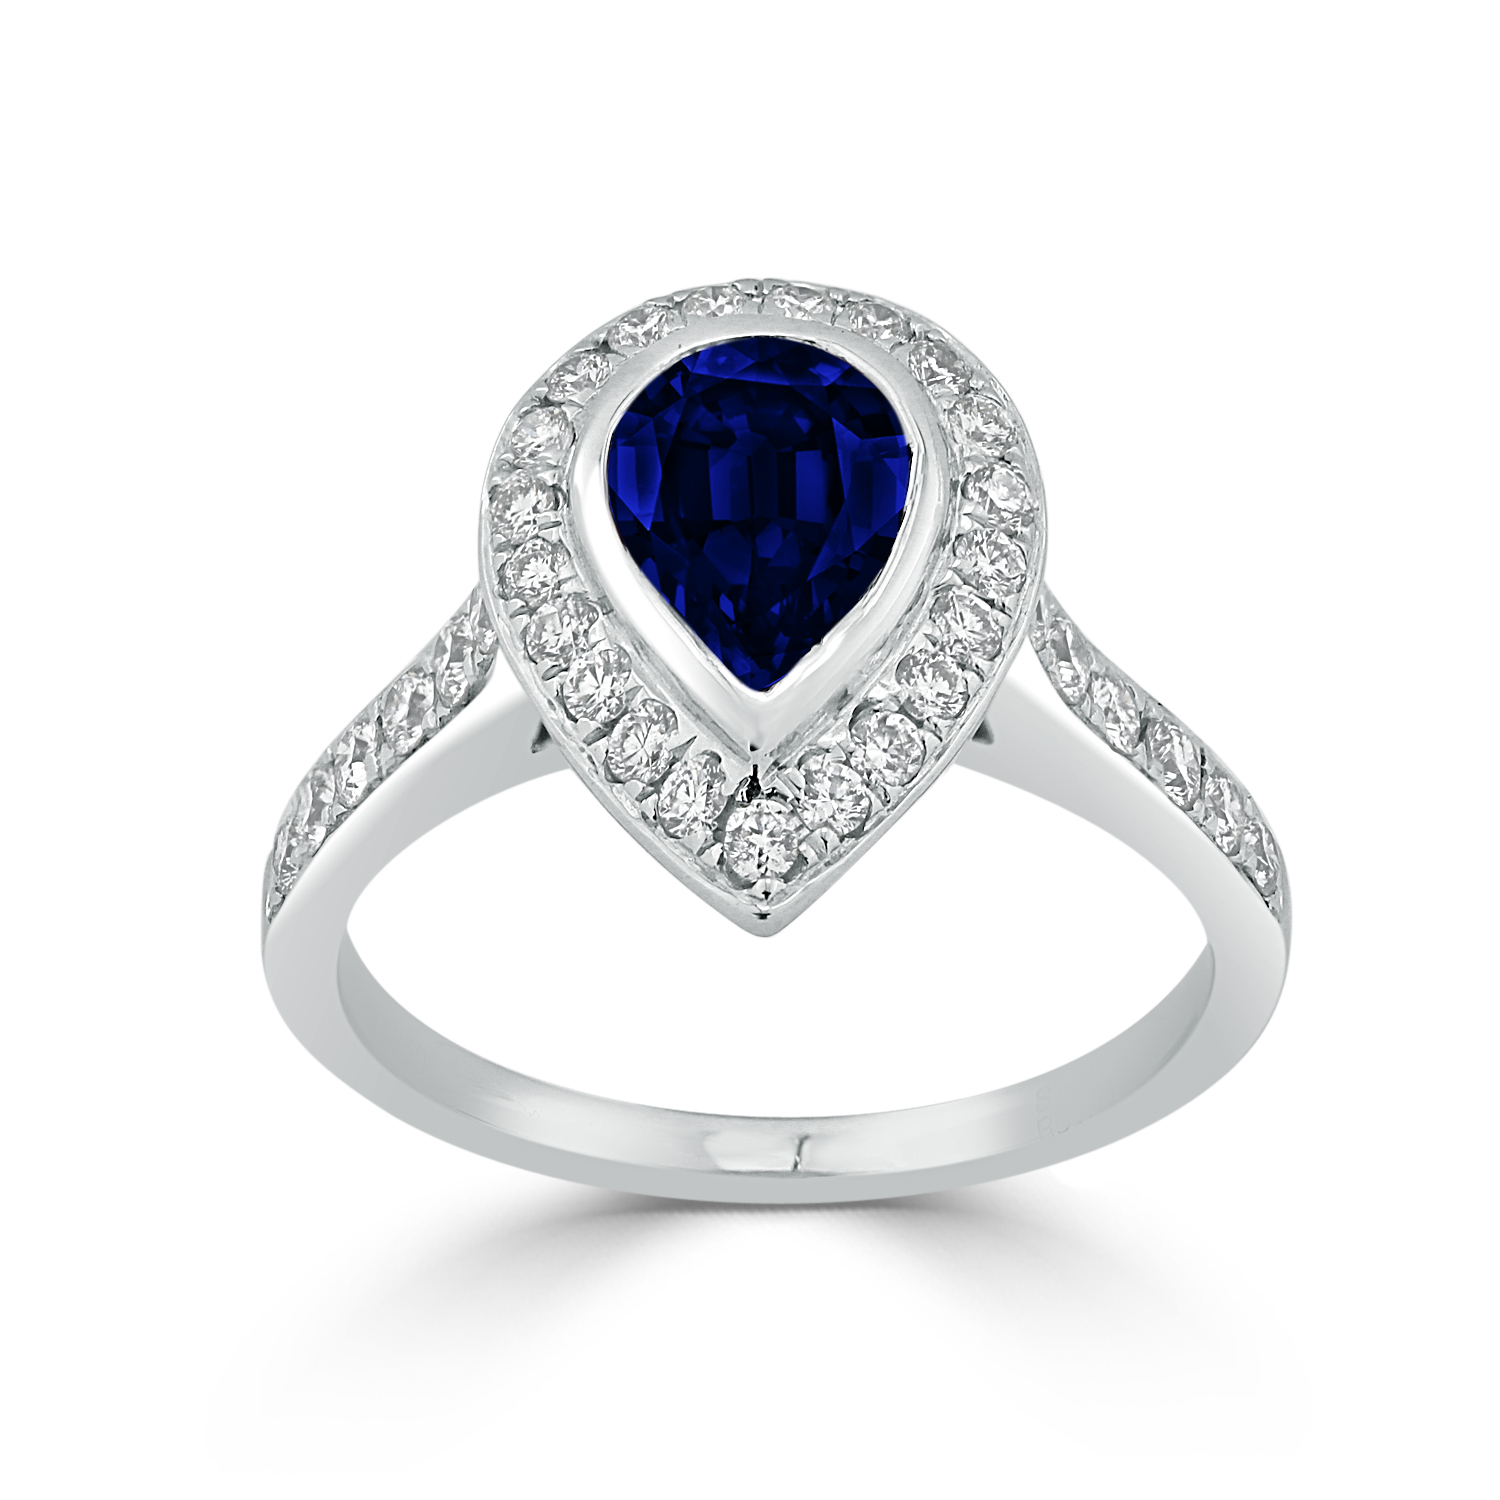 Laila Halo Blue Sapphire Diamond Ring in 18K White Gold With 1 1/5 carat Pear Blue Sapphire